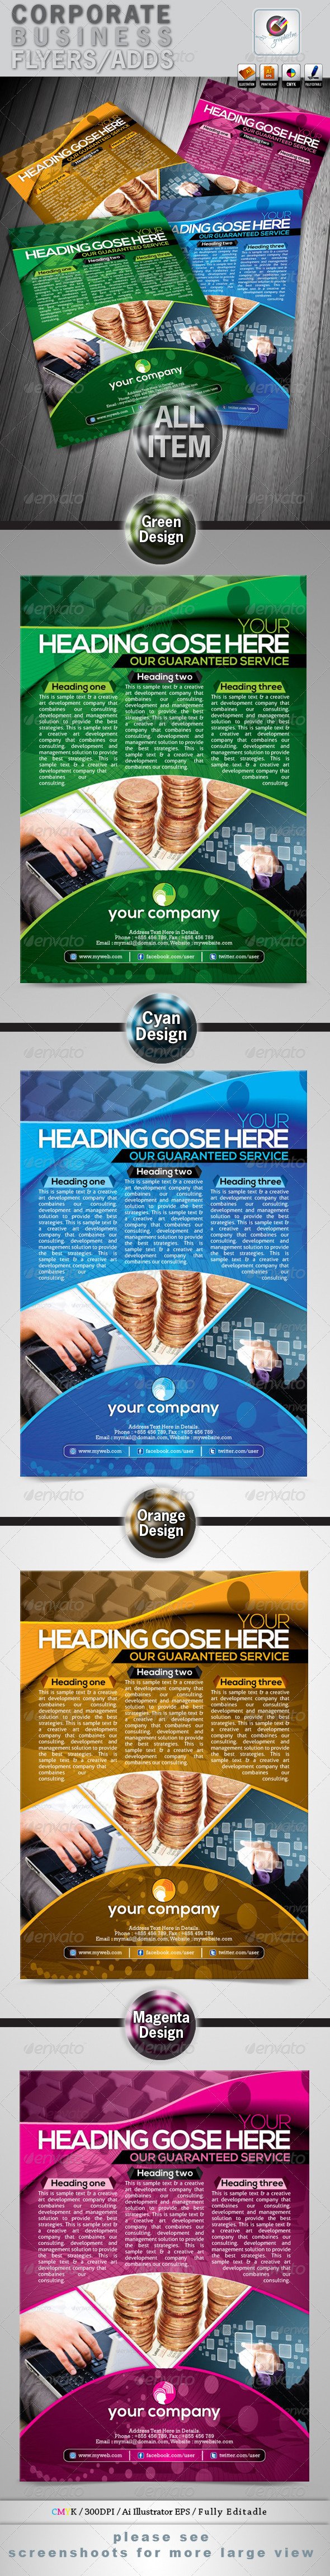 GraphicRiver Corporate Business Flyers Adds 4268841